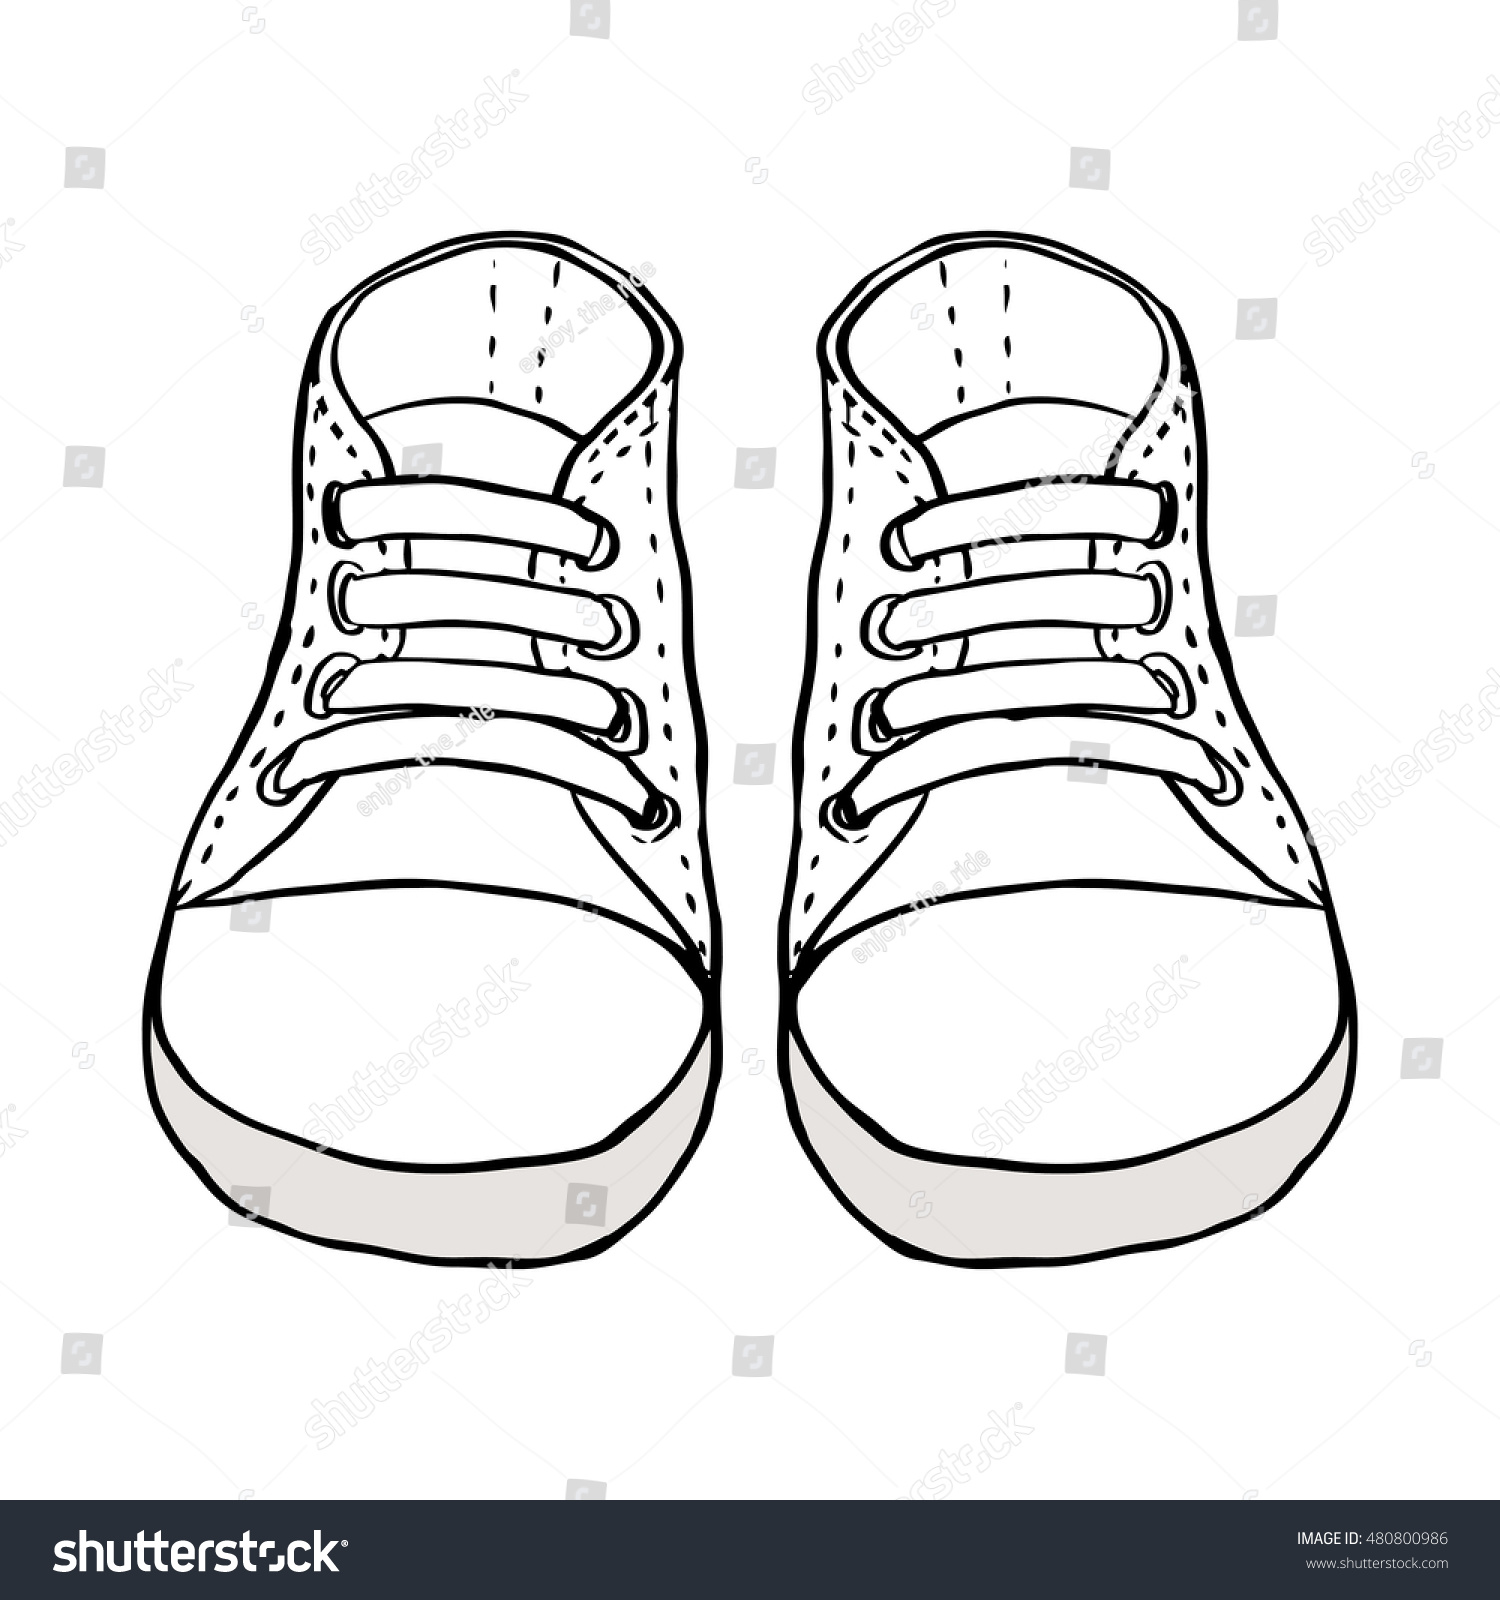 sketch illustration of kids shoes isolated on white - Sketch Images For Kids